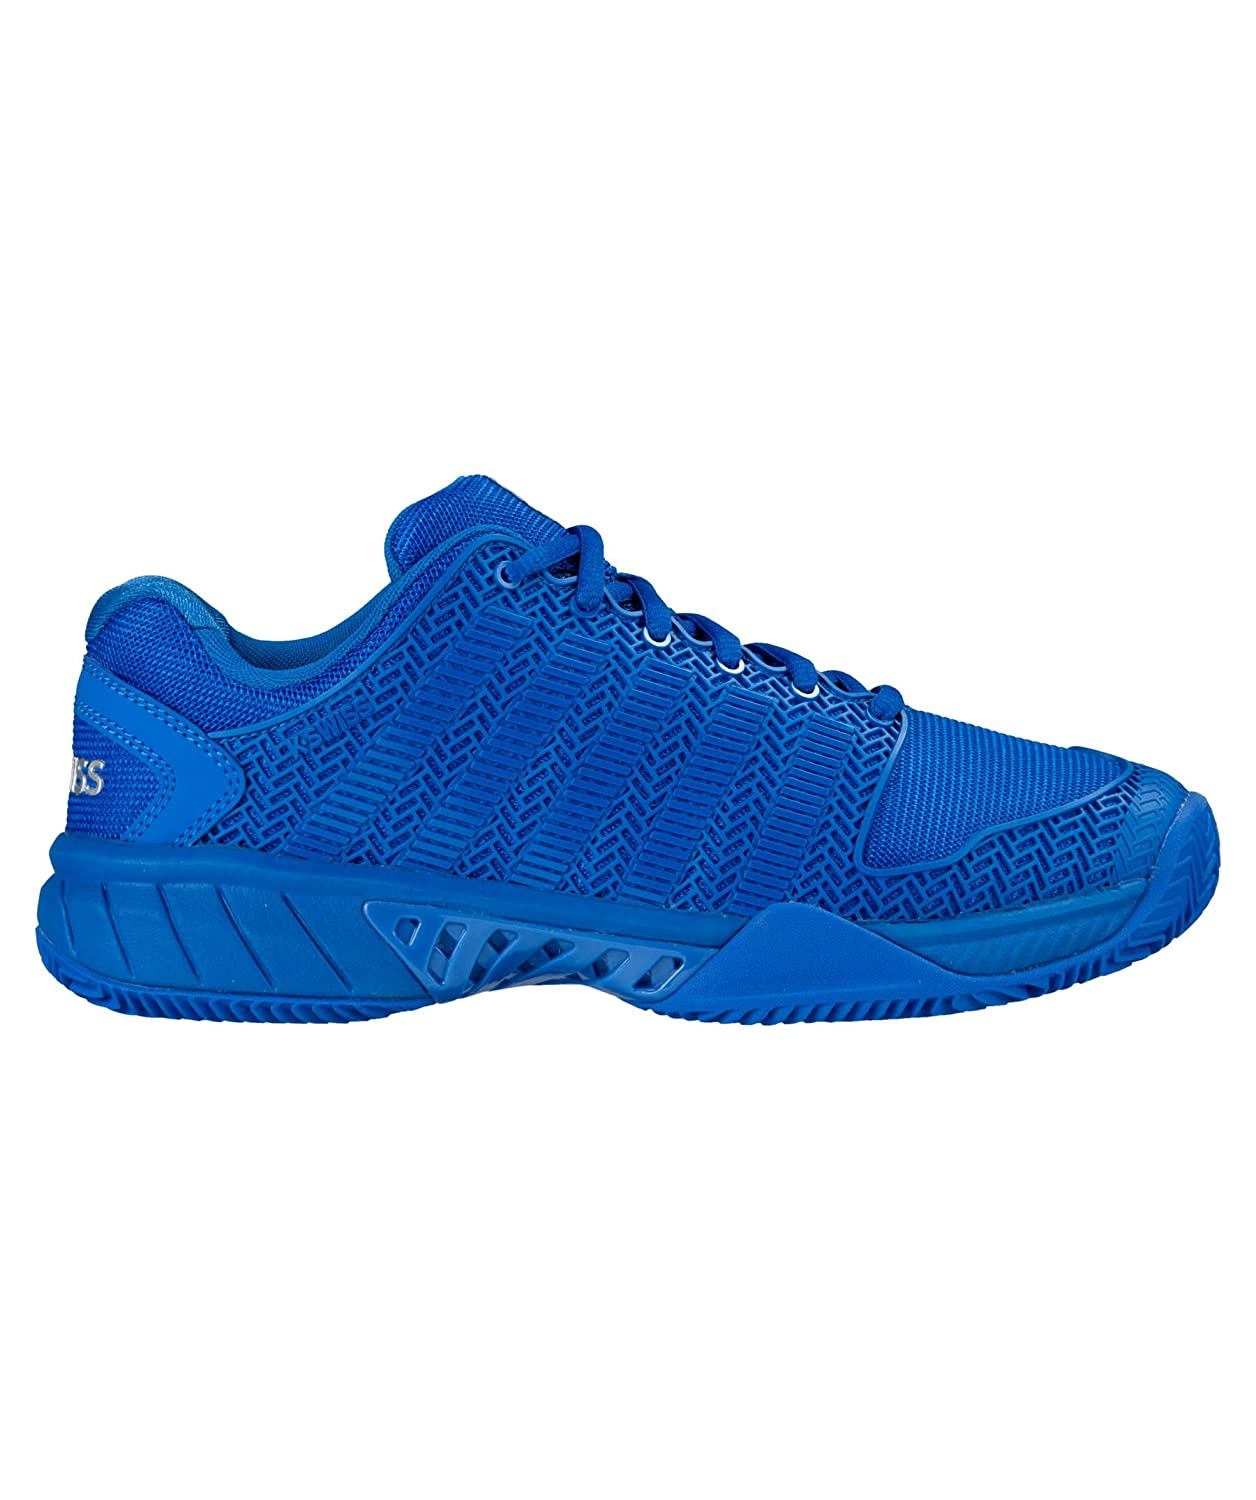 K-Swiss Hypercourt Express HB blue - 12 US: Amazon.es ...